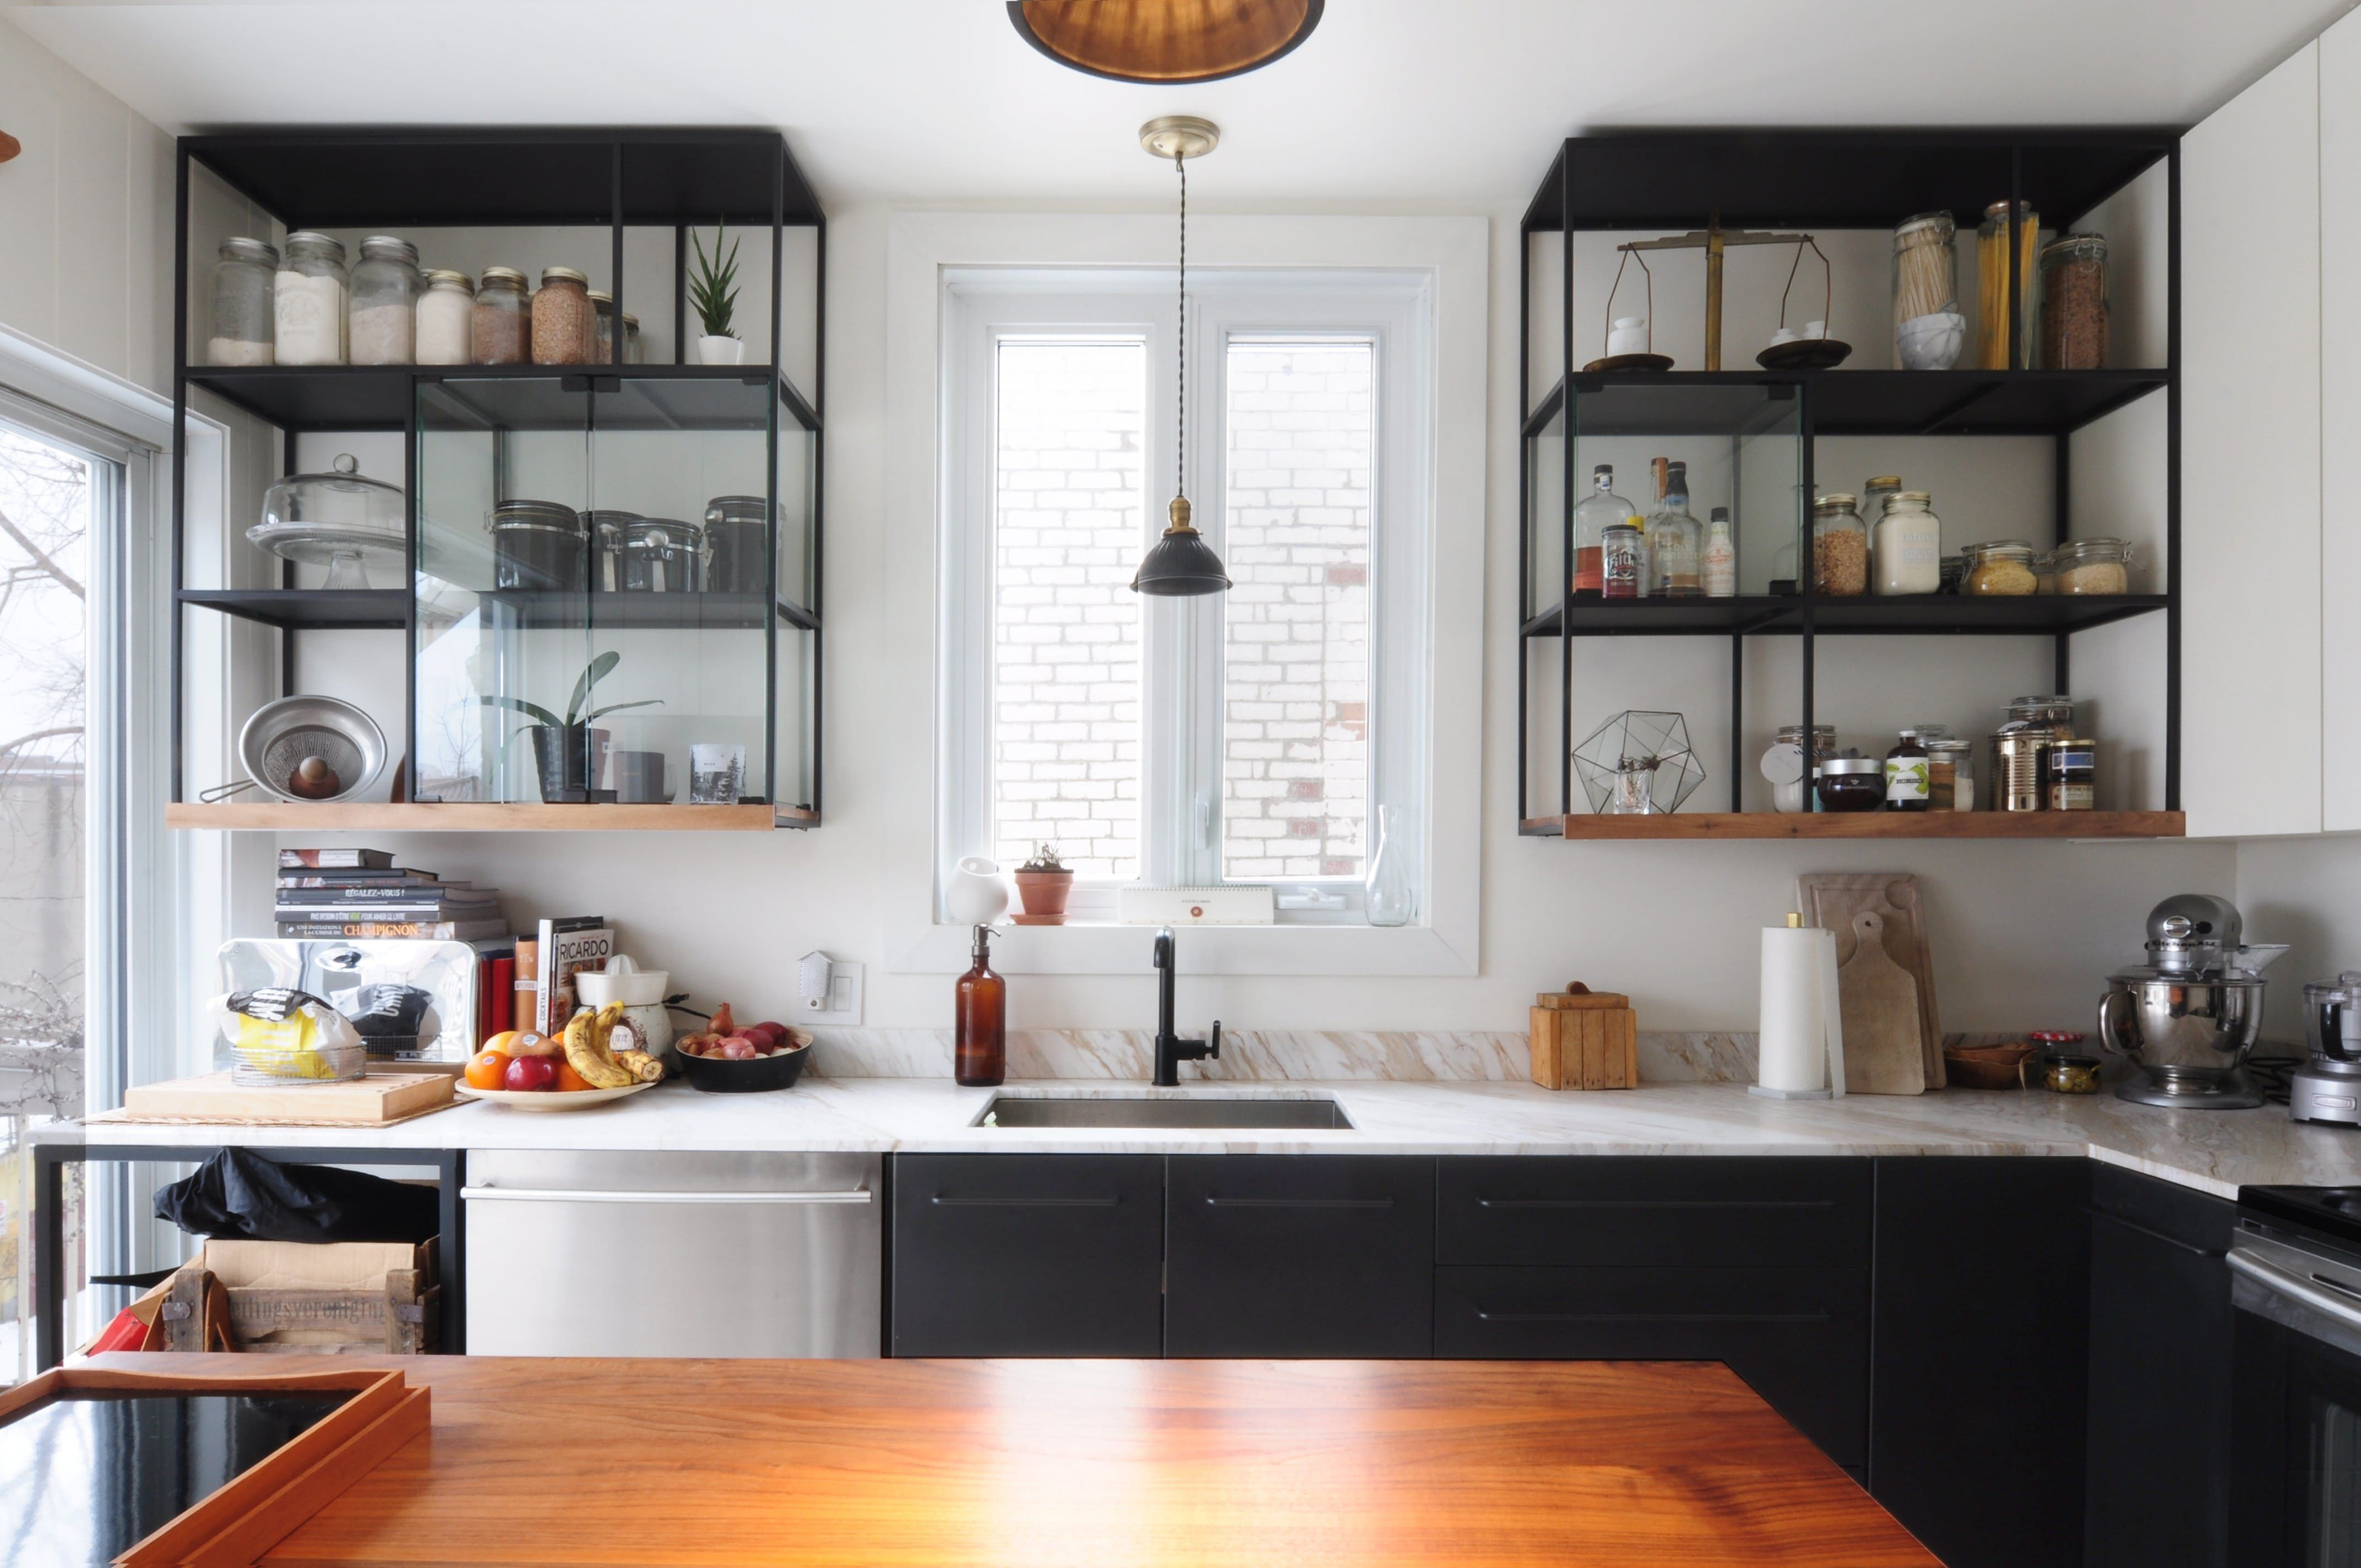 Shelf over kitchen window  a fresh paint color we love for the kitchen so no itus not white